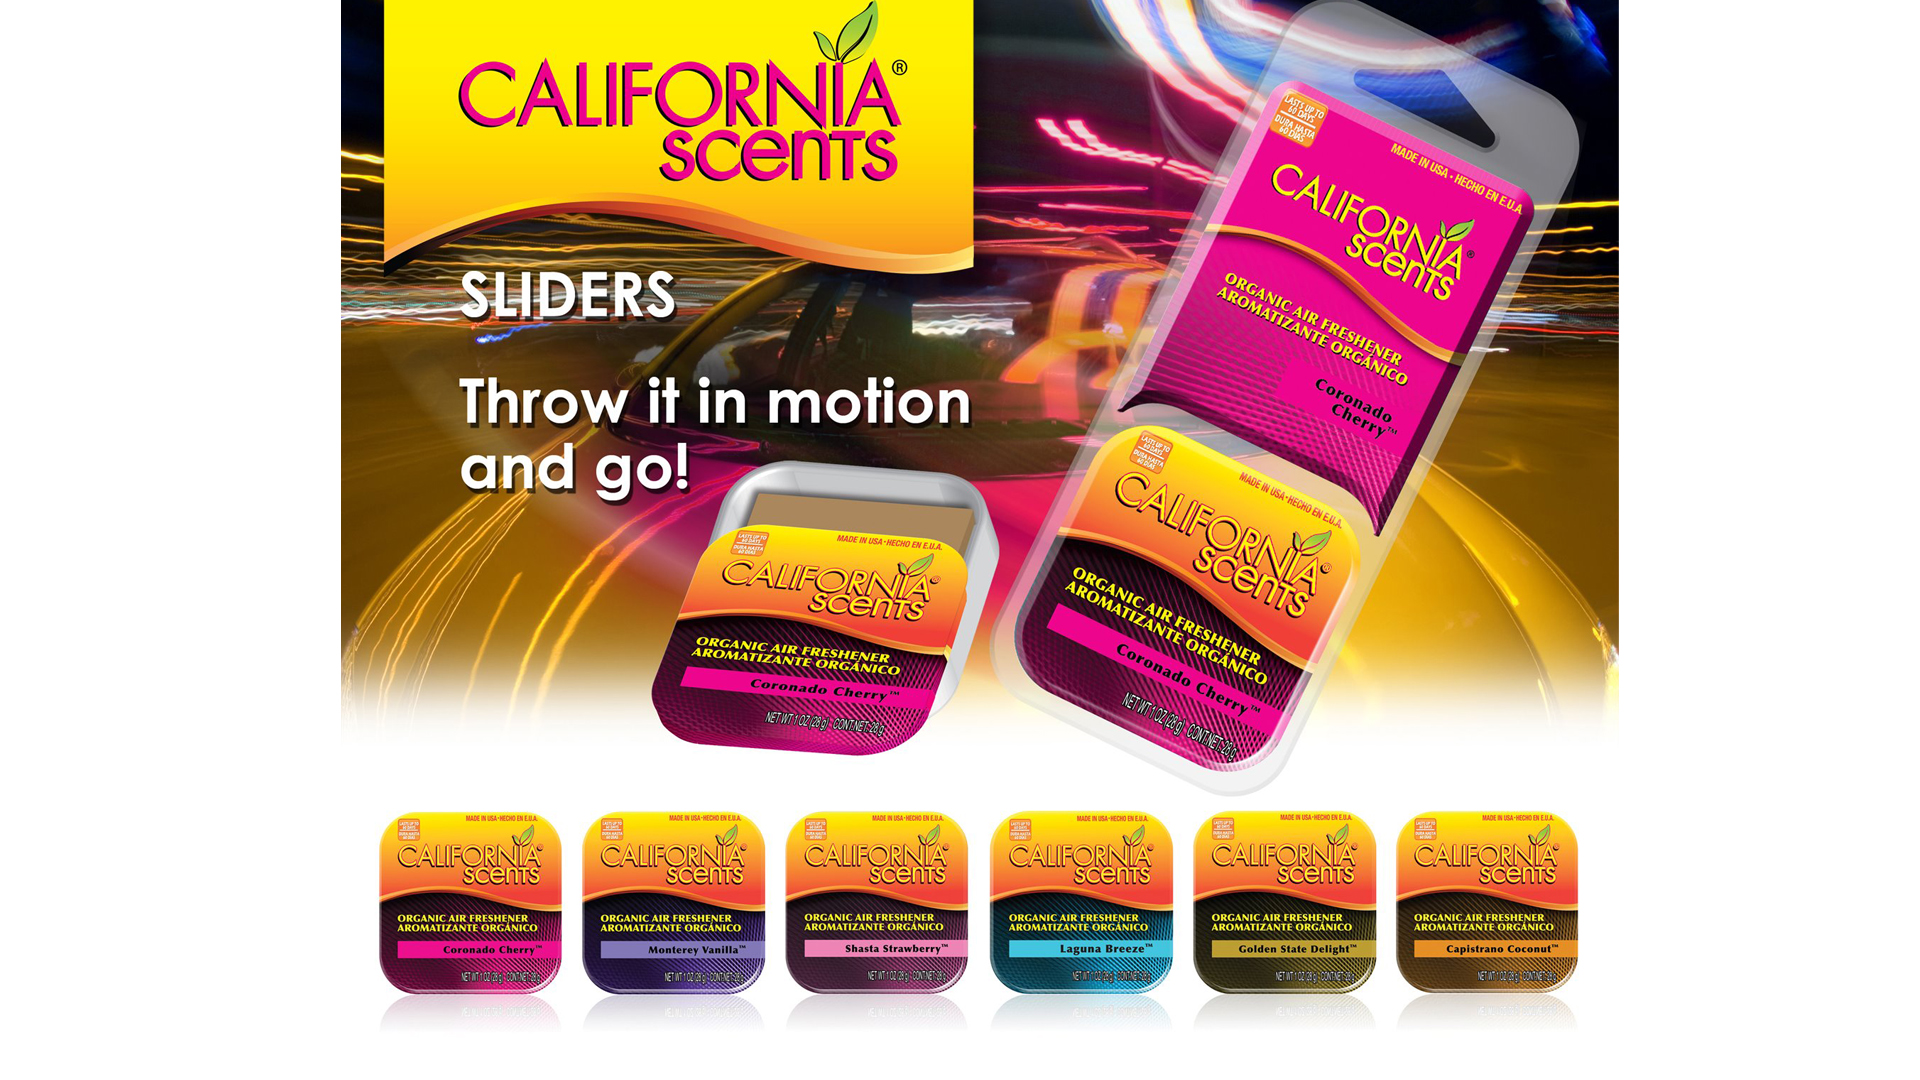 California Scents, consumer  air freshener product packaging and label